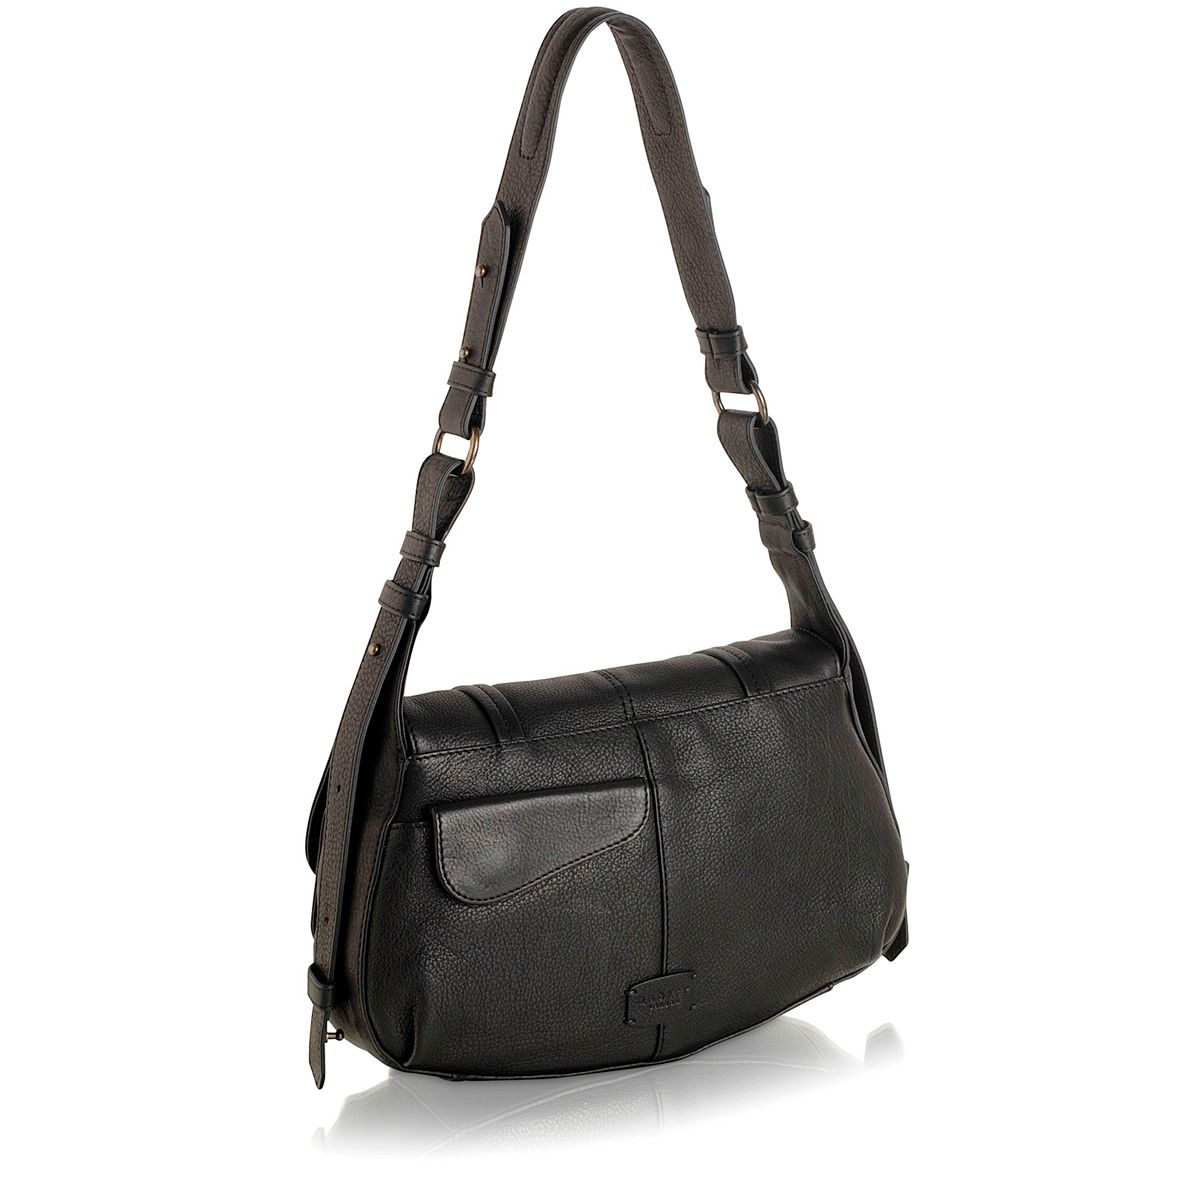 Grosvenor medium leather black flapover handbag